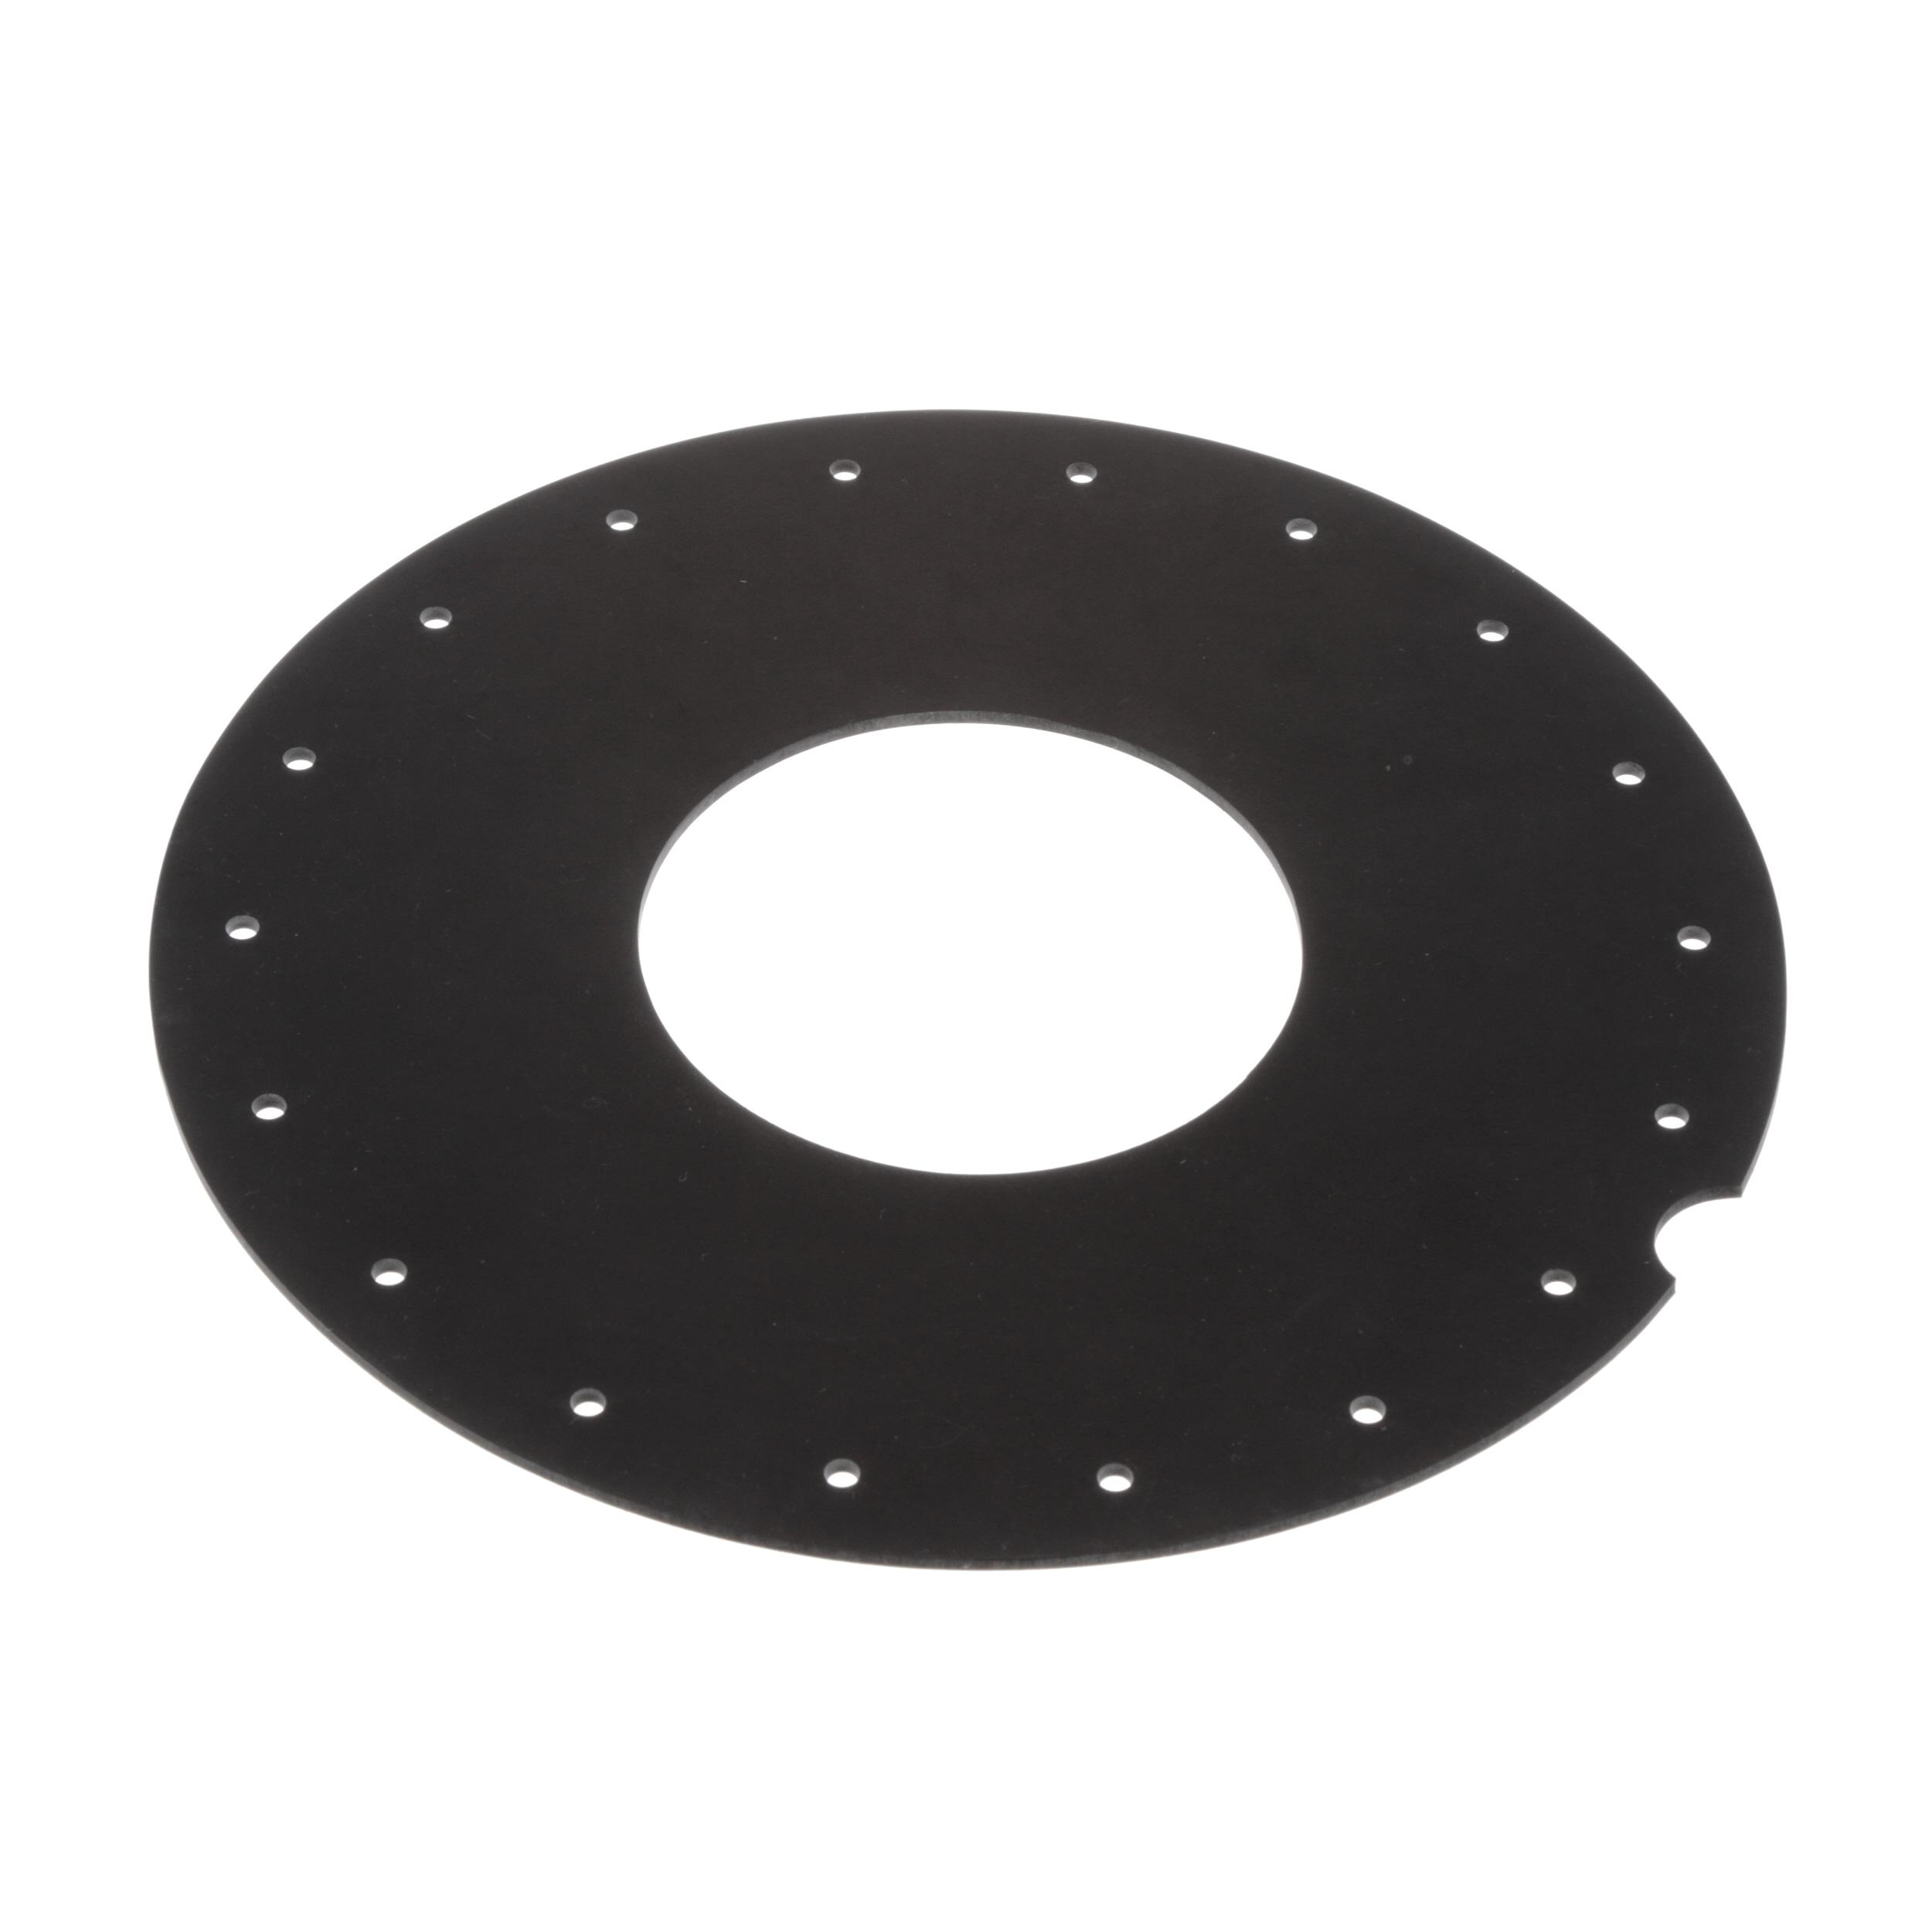 DISPENSE-RITE BAFFLE, RUBBER - SMALL